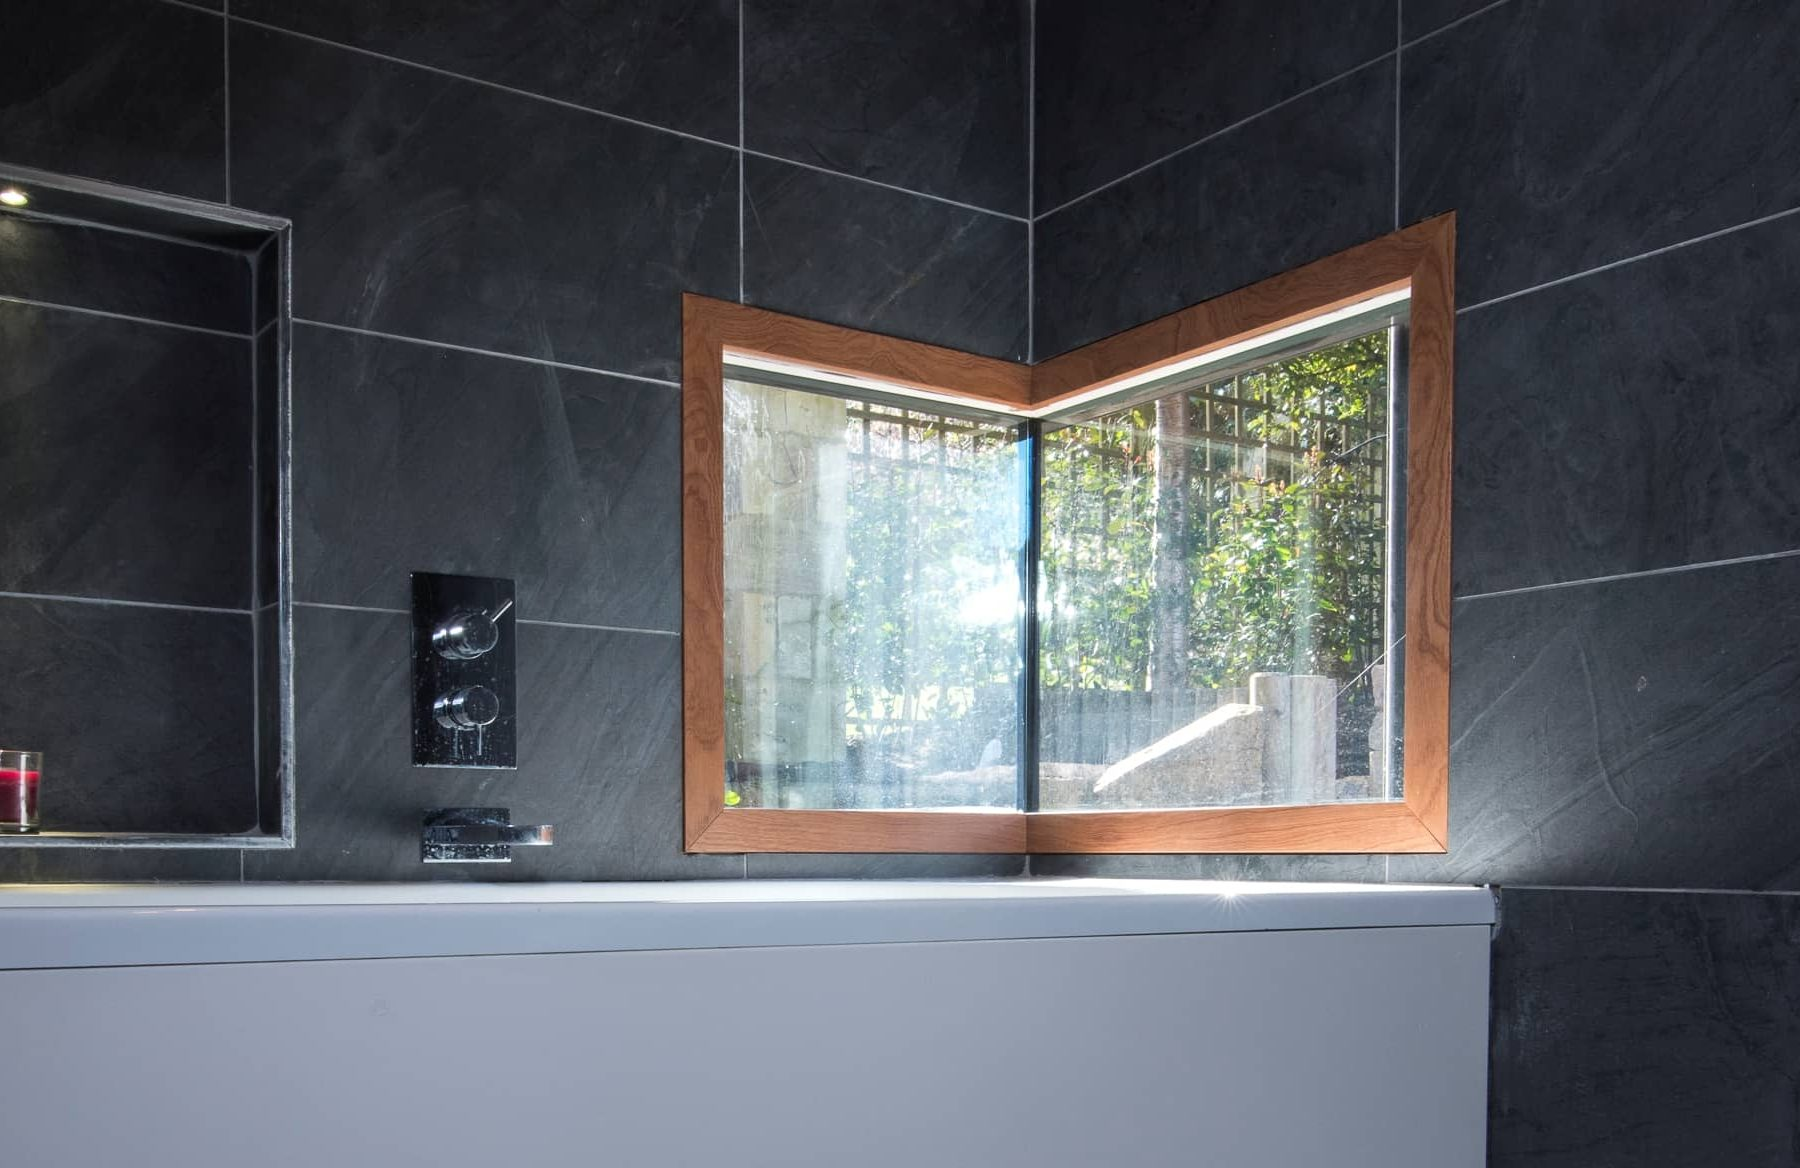 Unique corner window in dark tiled bathroom